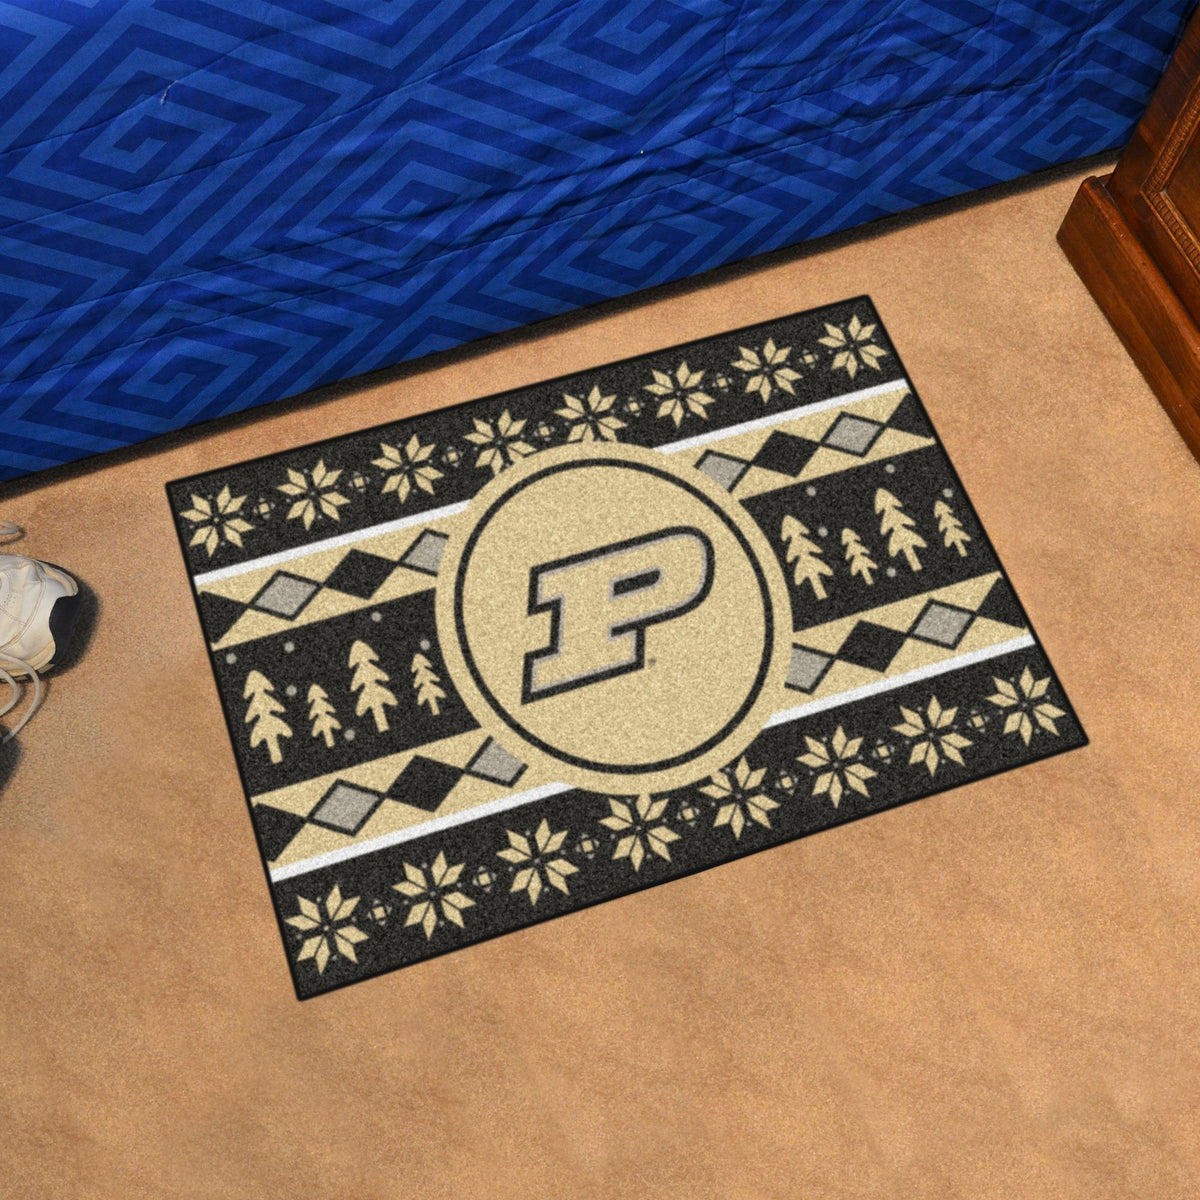 Collegiate - Holiday Sweater Starter Mat Collegiate Mats, Rectangular Mats, Holiday Sweater Starter Mat, Collegiate, Home Fan Mats Purdue